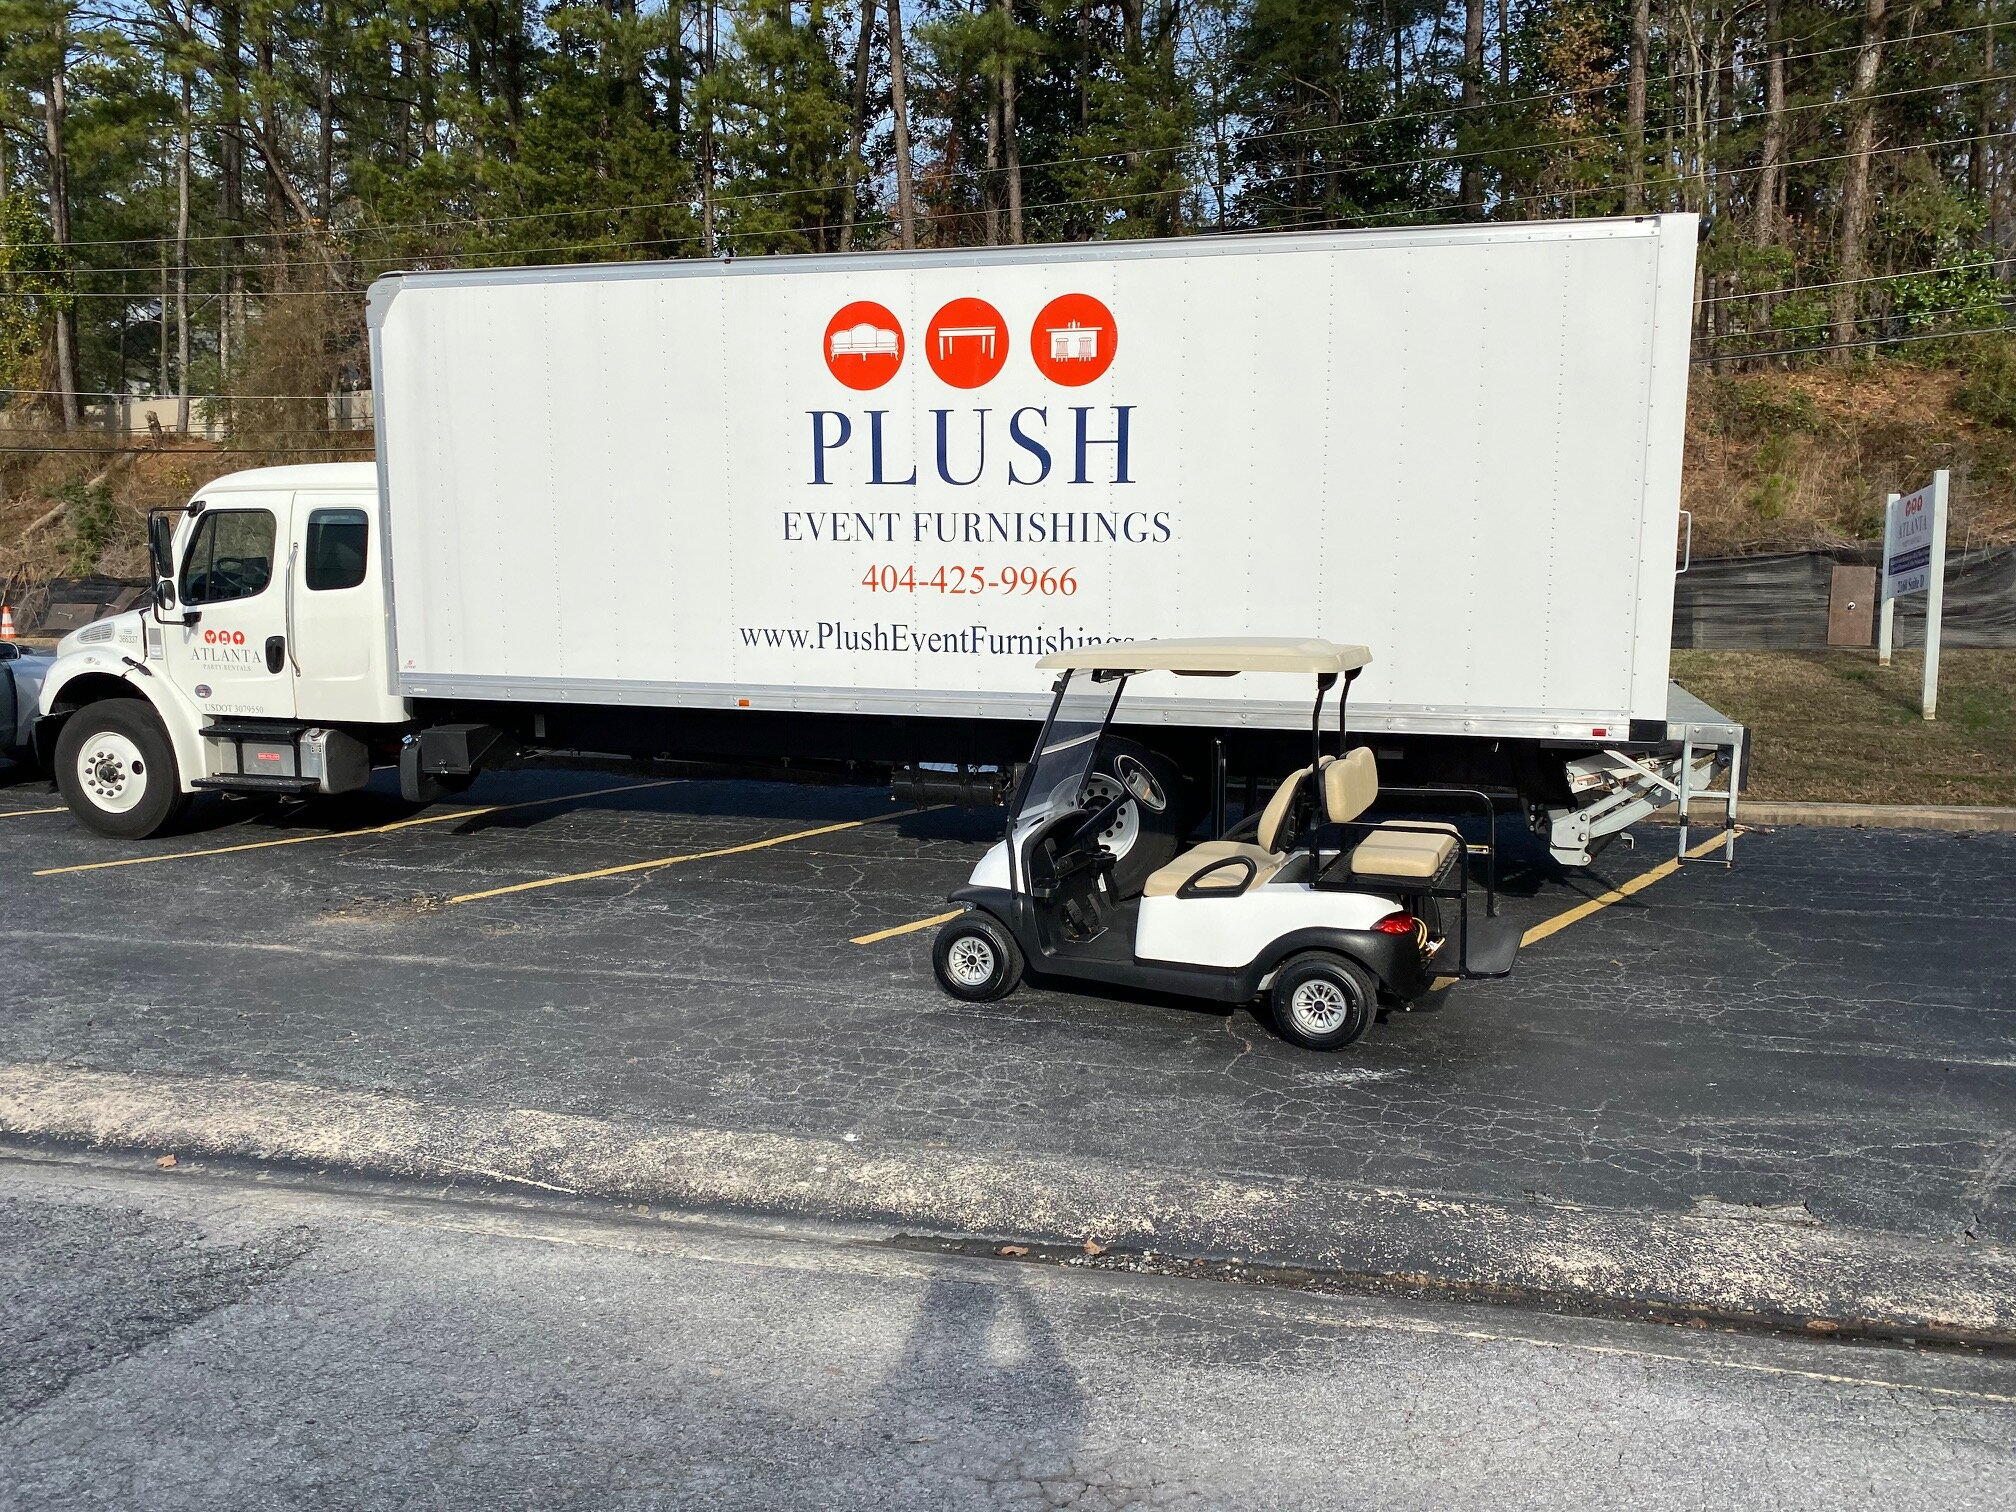 Our new PLUSH trucks and new golf cart, ready to take you on a tour of our 60,000 sq. ft warehouse!